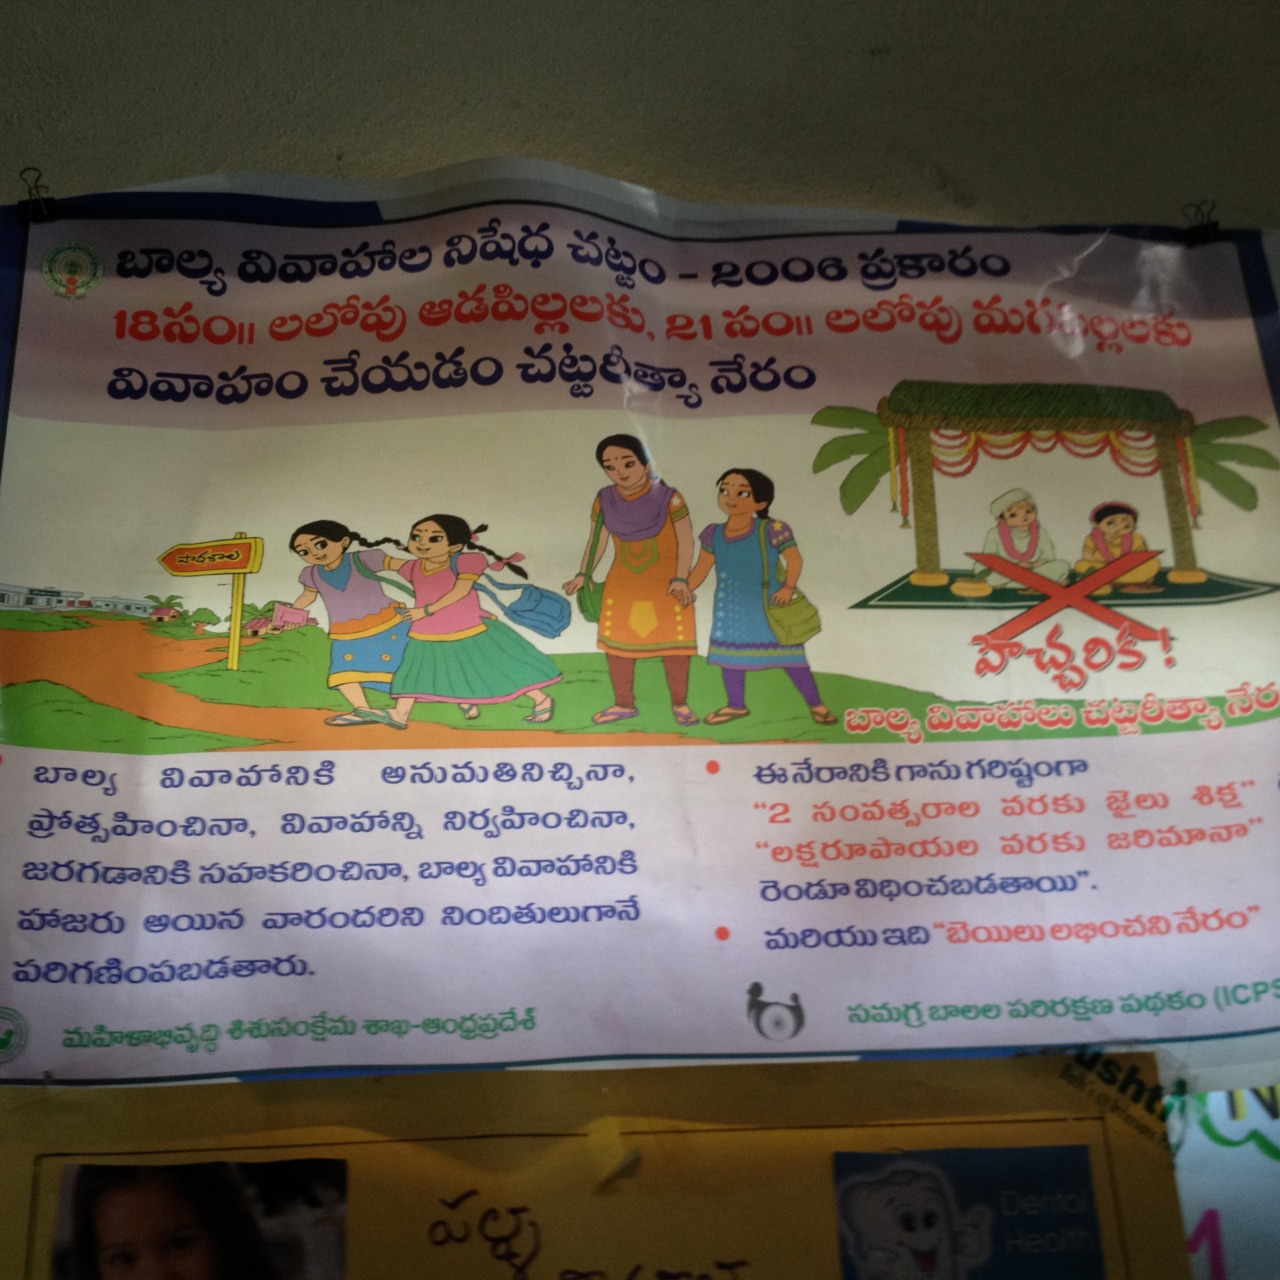 A poster telling parents to send their children to school because child marriage is illegal